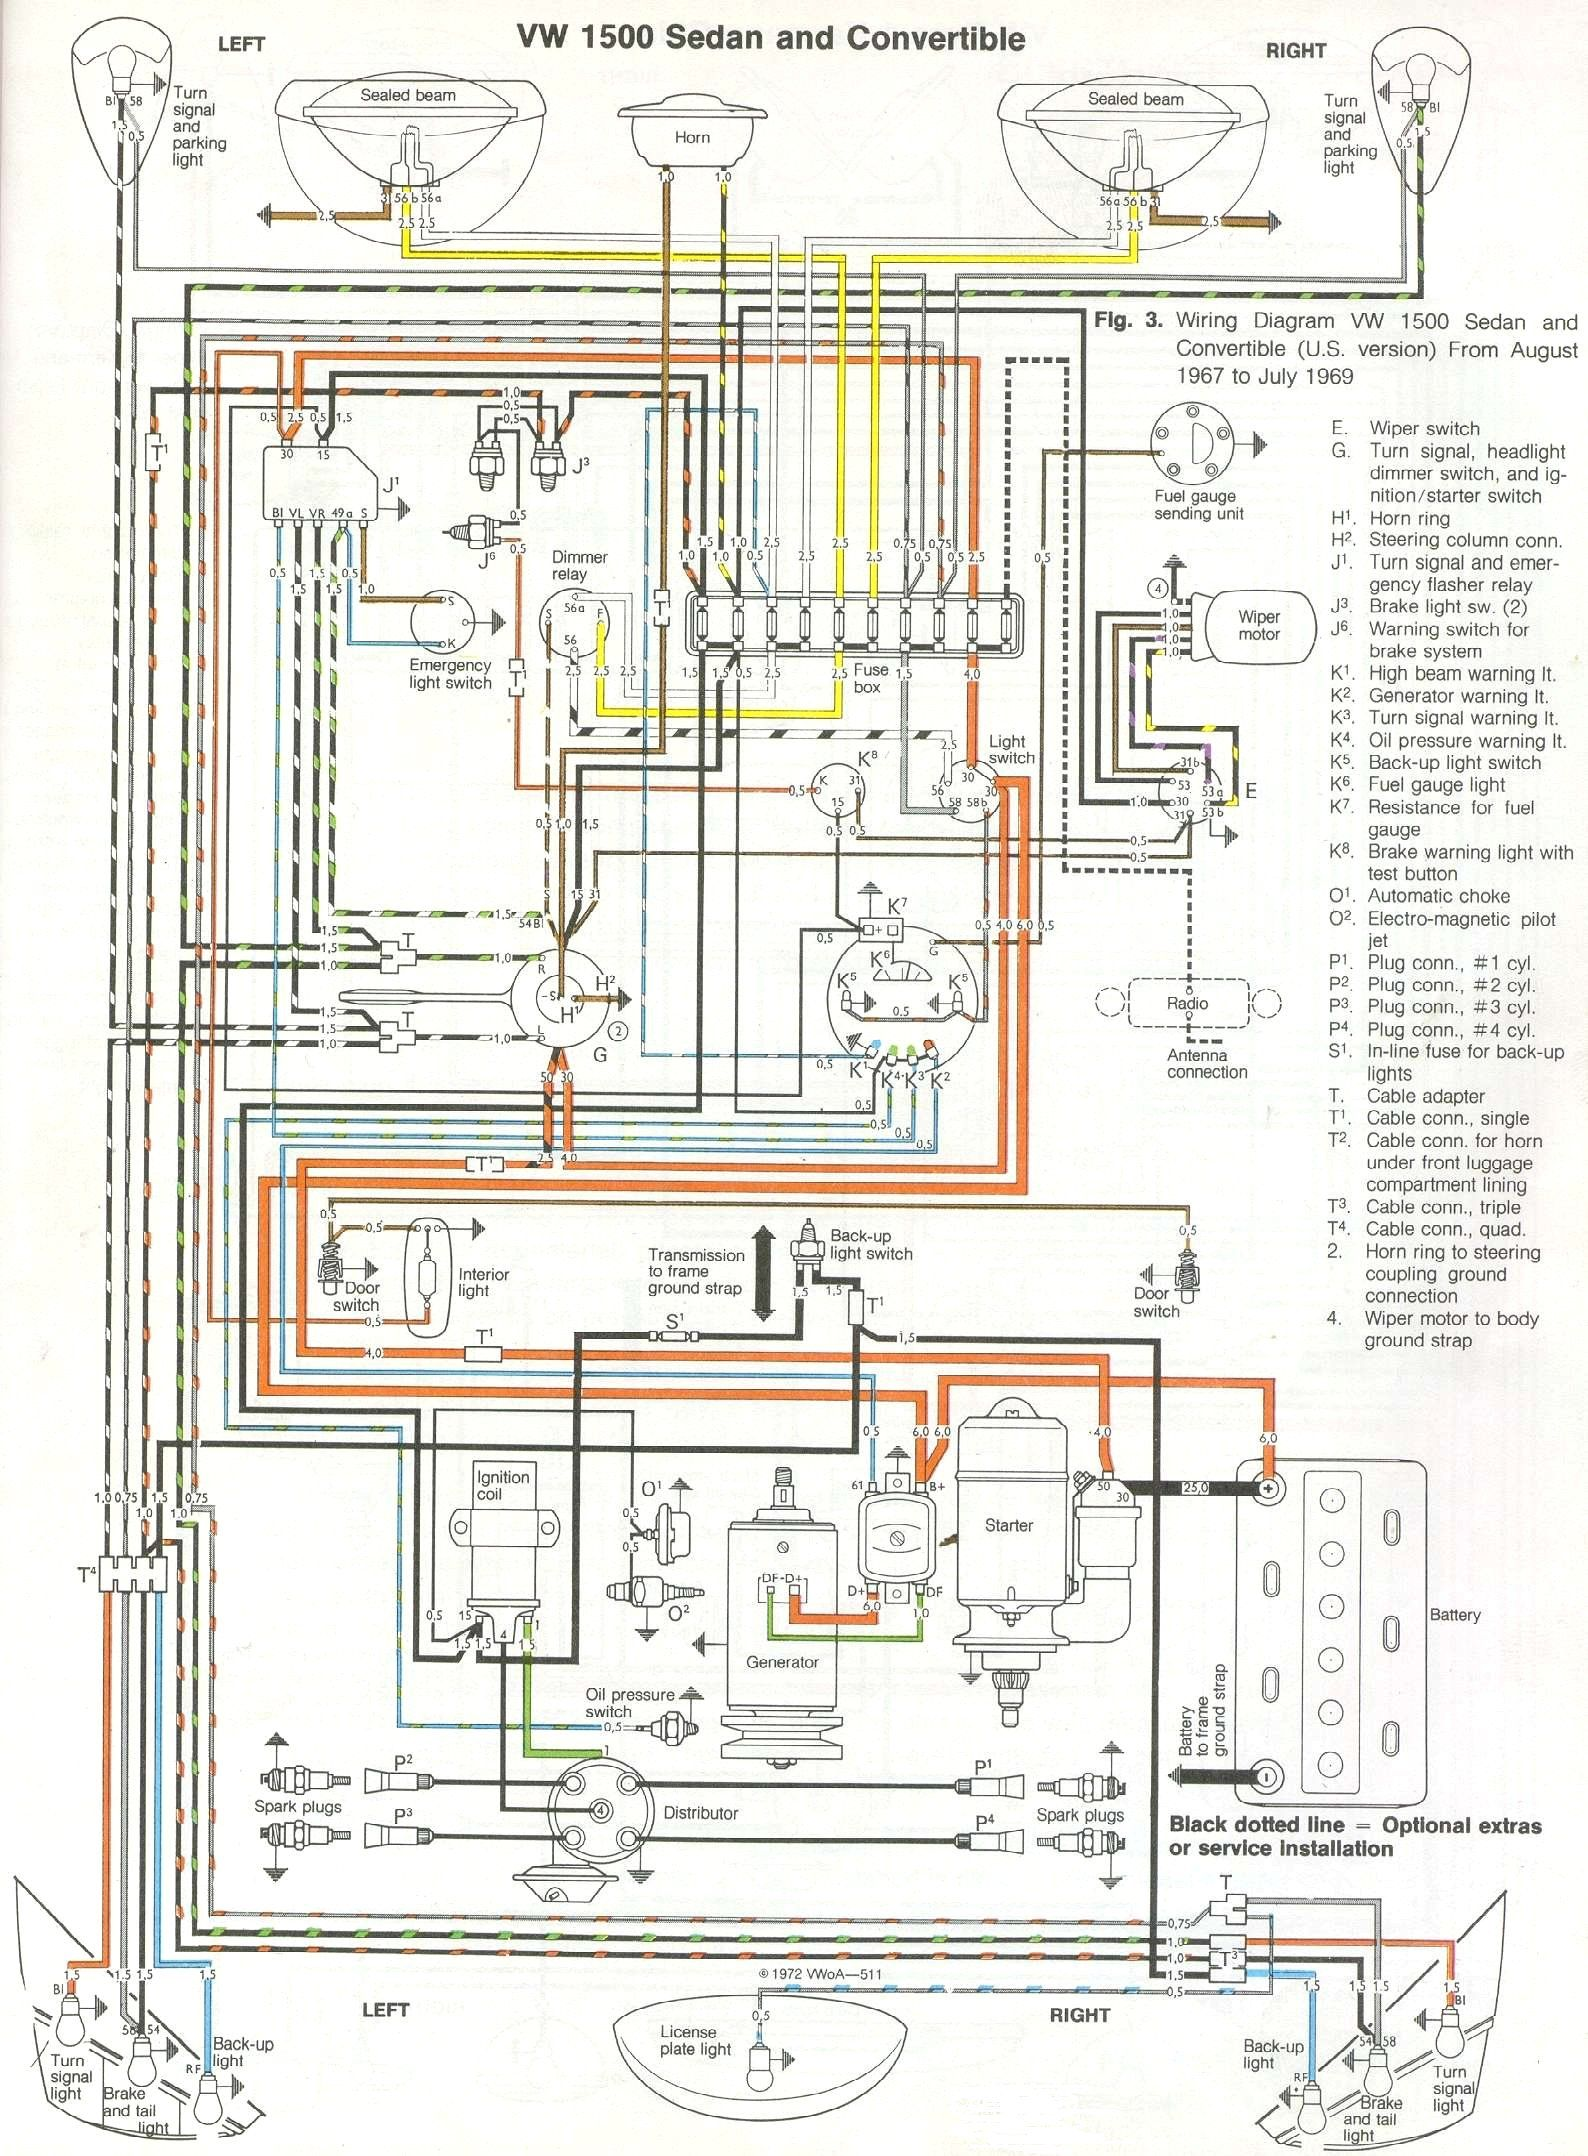 1968 69 beetle wiring diagram usa thegoldenbug com engine rh pinterest com 69 volkswagen beetle wiring diagram